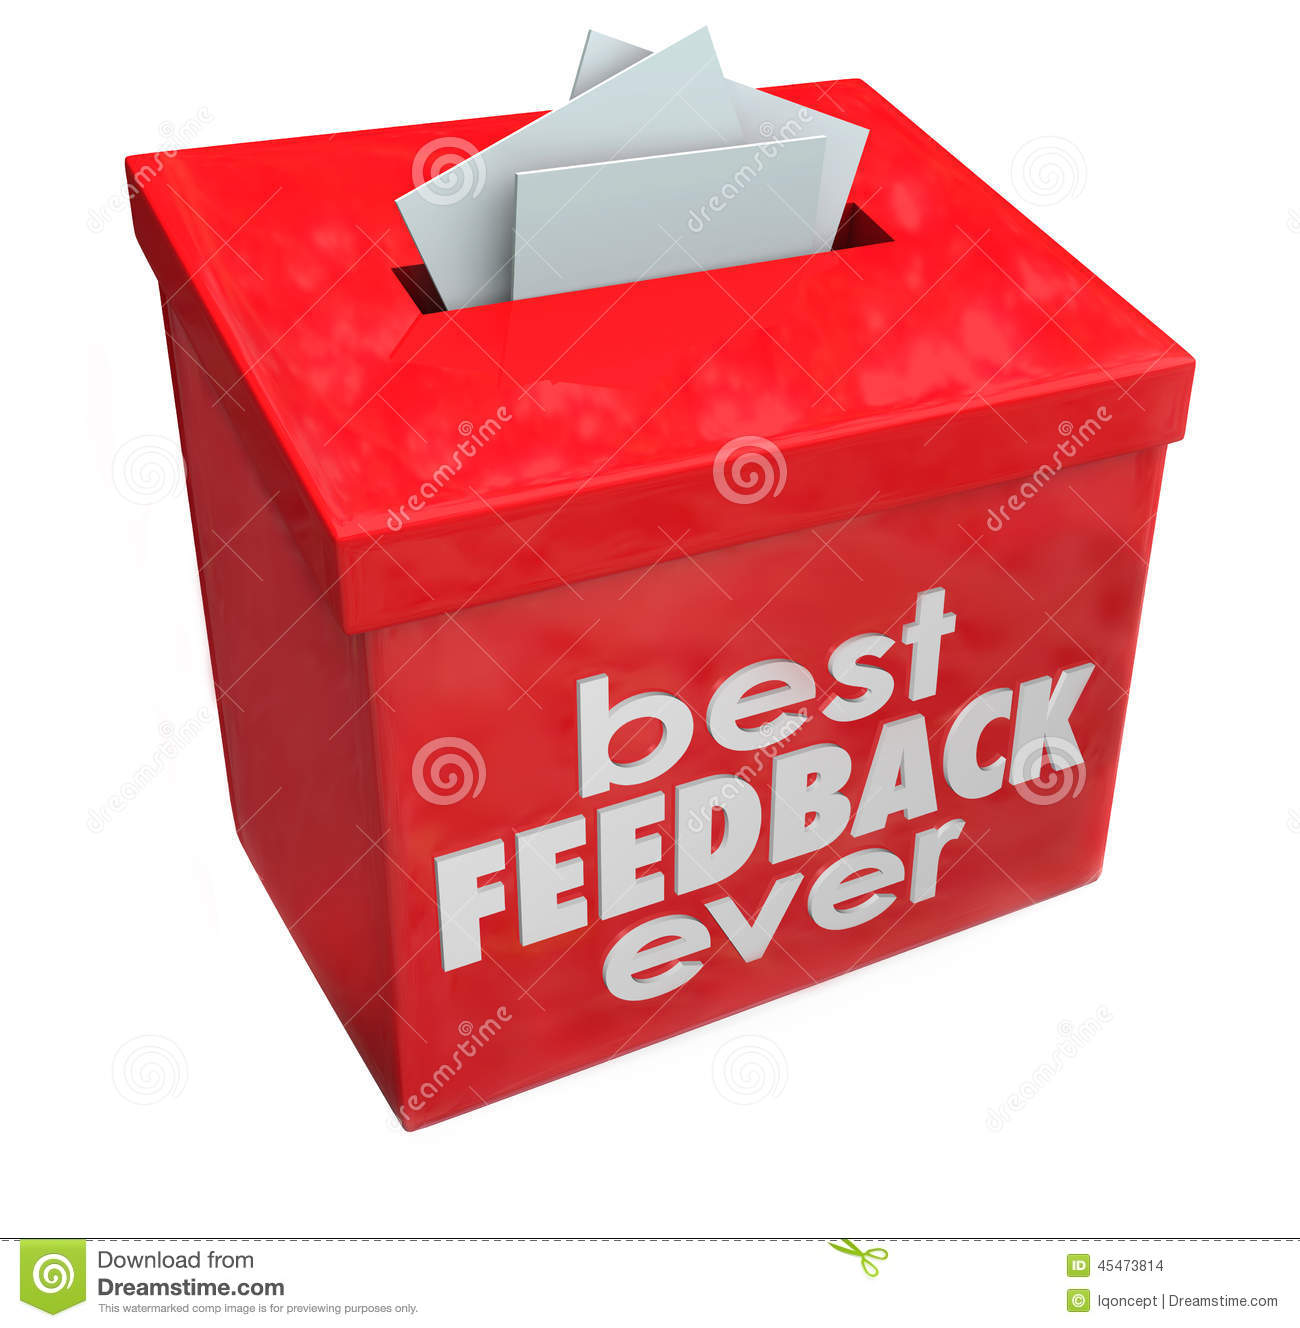 Best feedback ever suggestion box ideas input comments for Best image comments